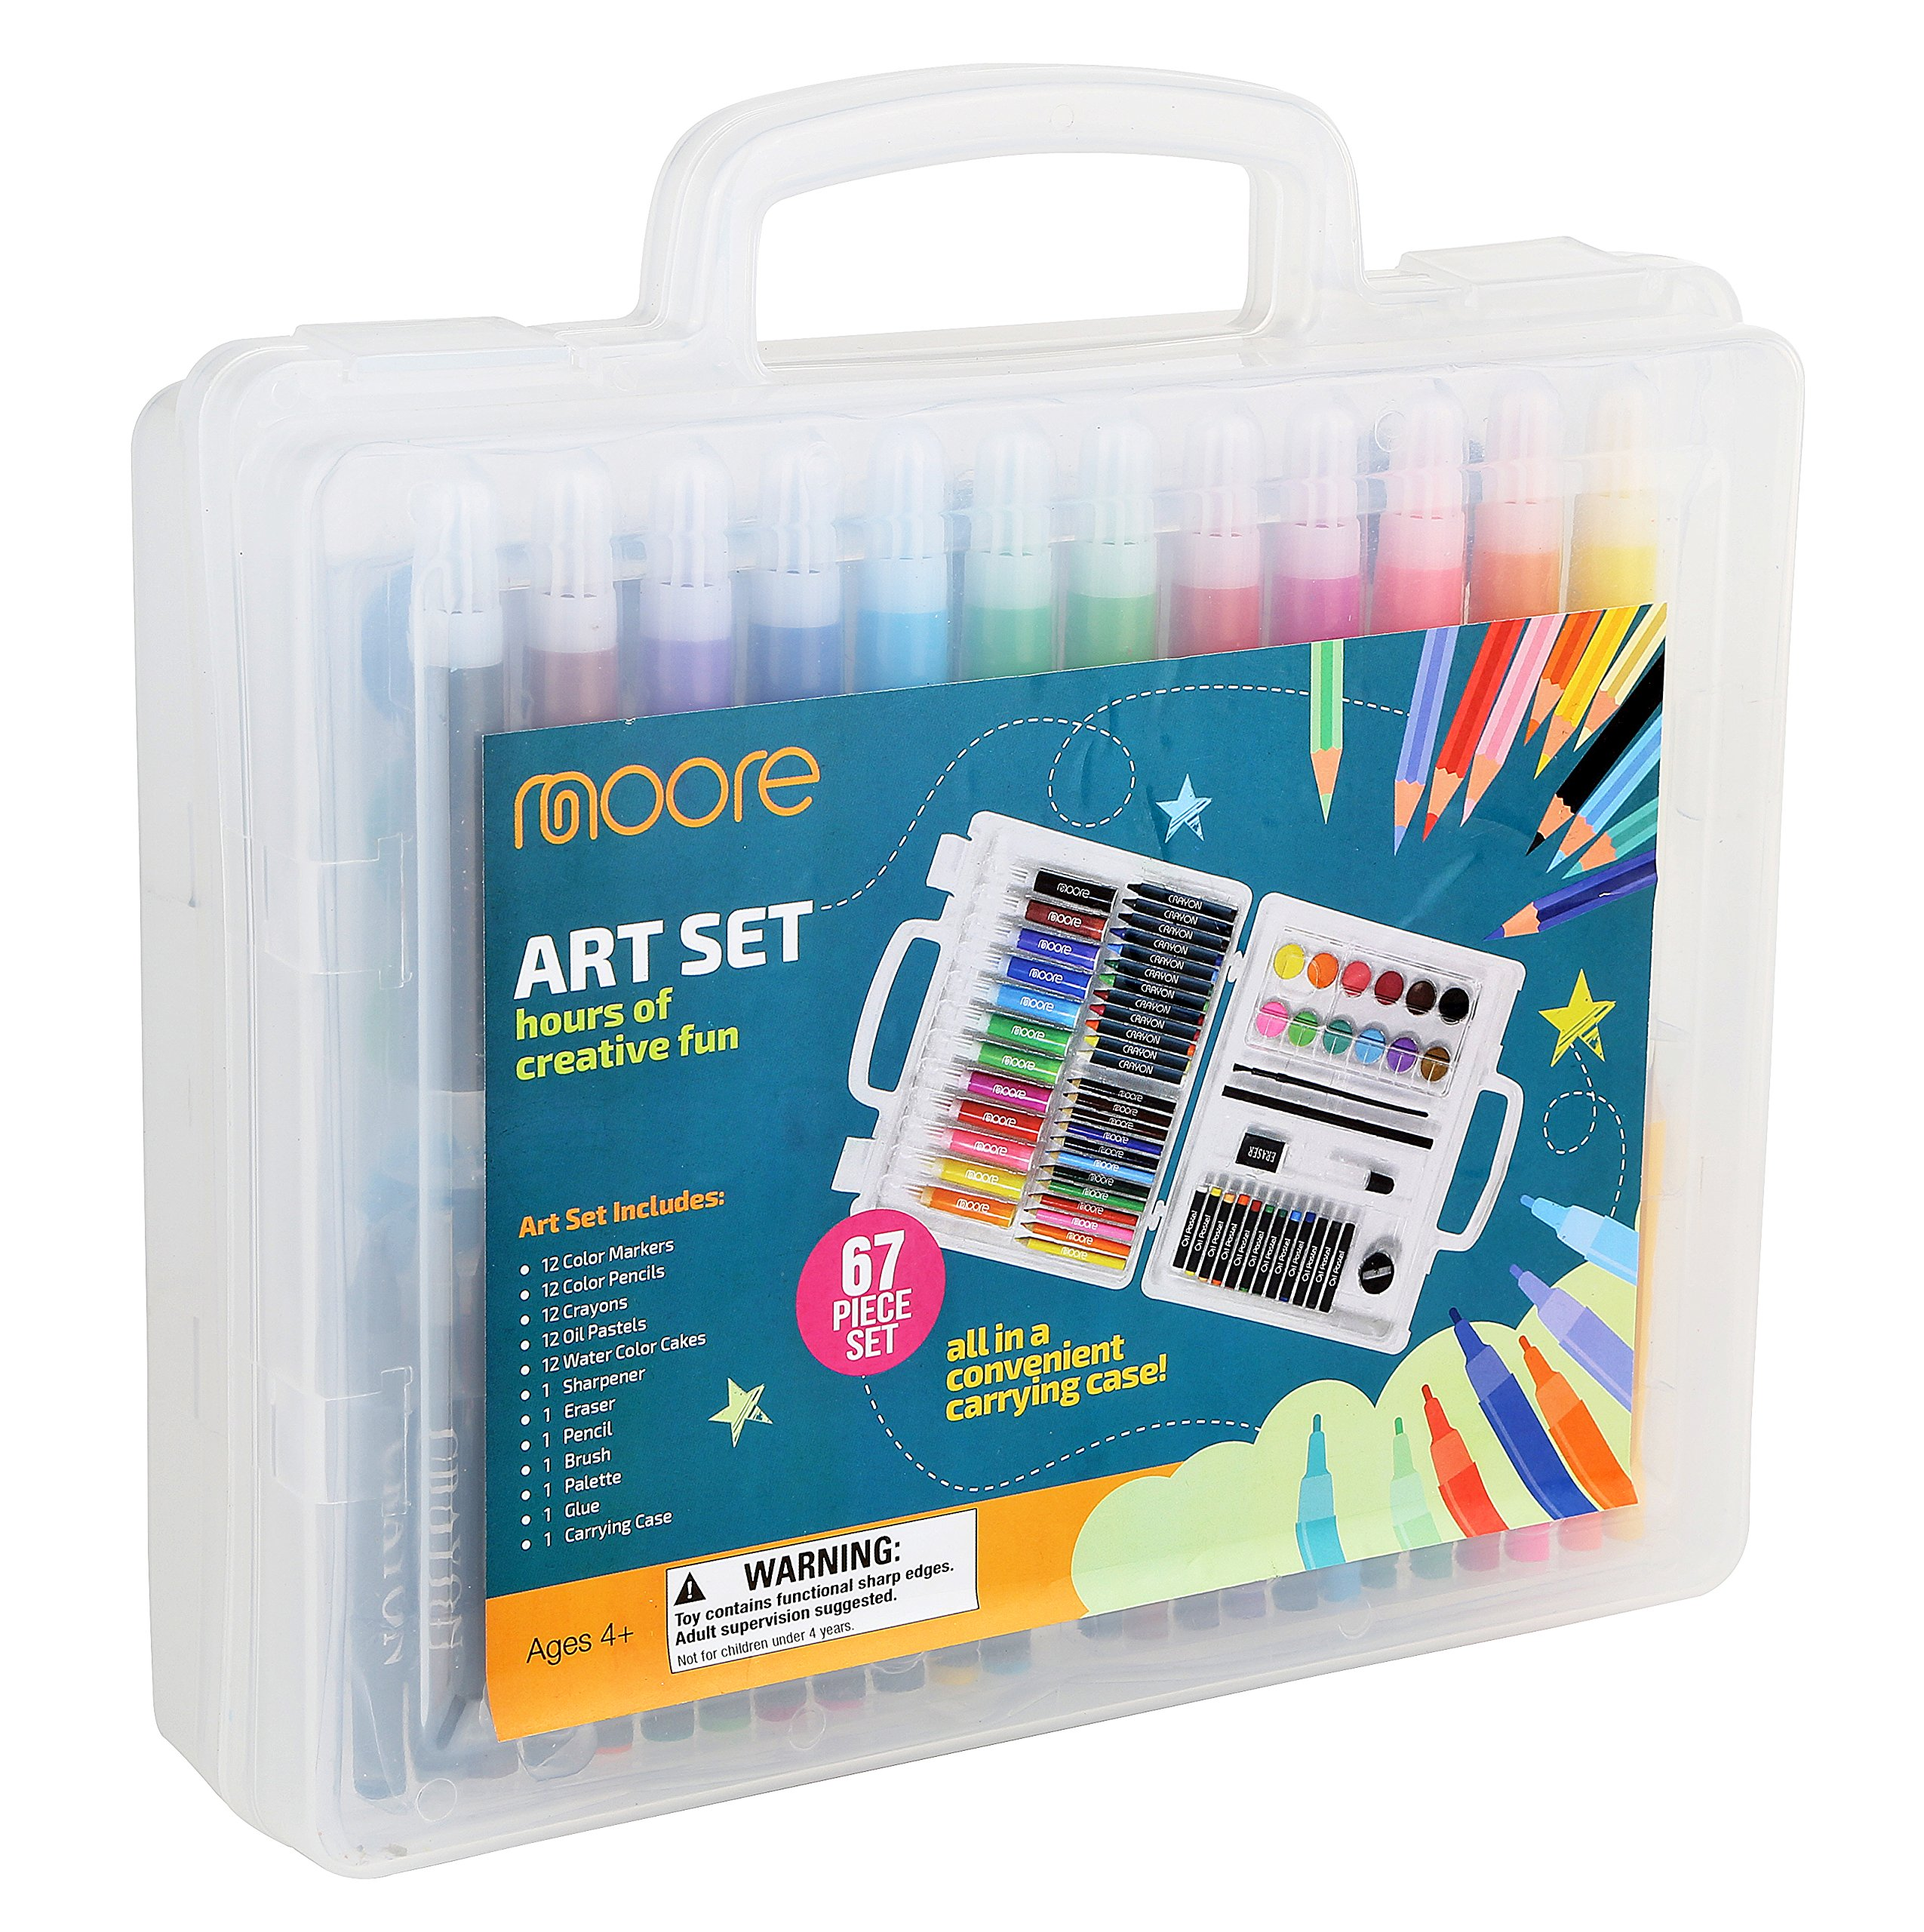 Moore: Deluxe 67 Piece Art Set with Clear Plastic Creativity Case kit with wonderful design kid's art set